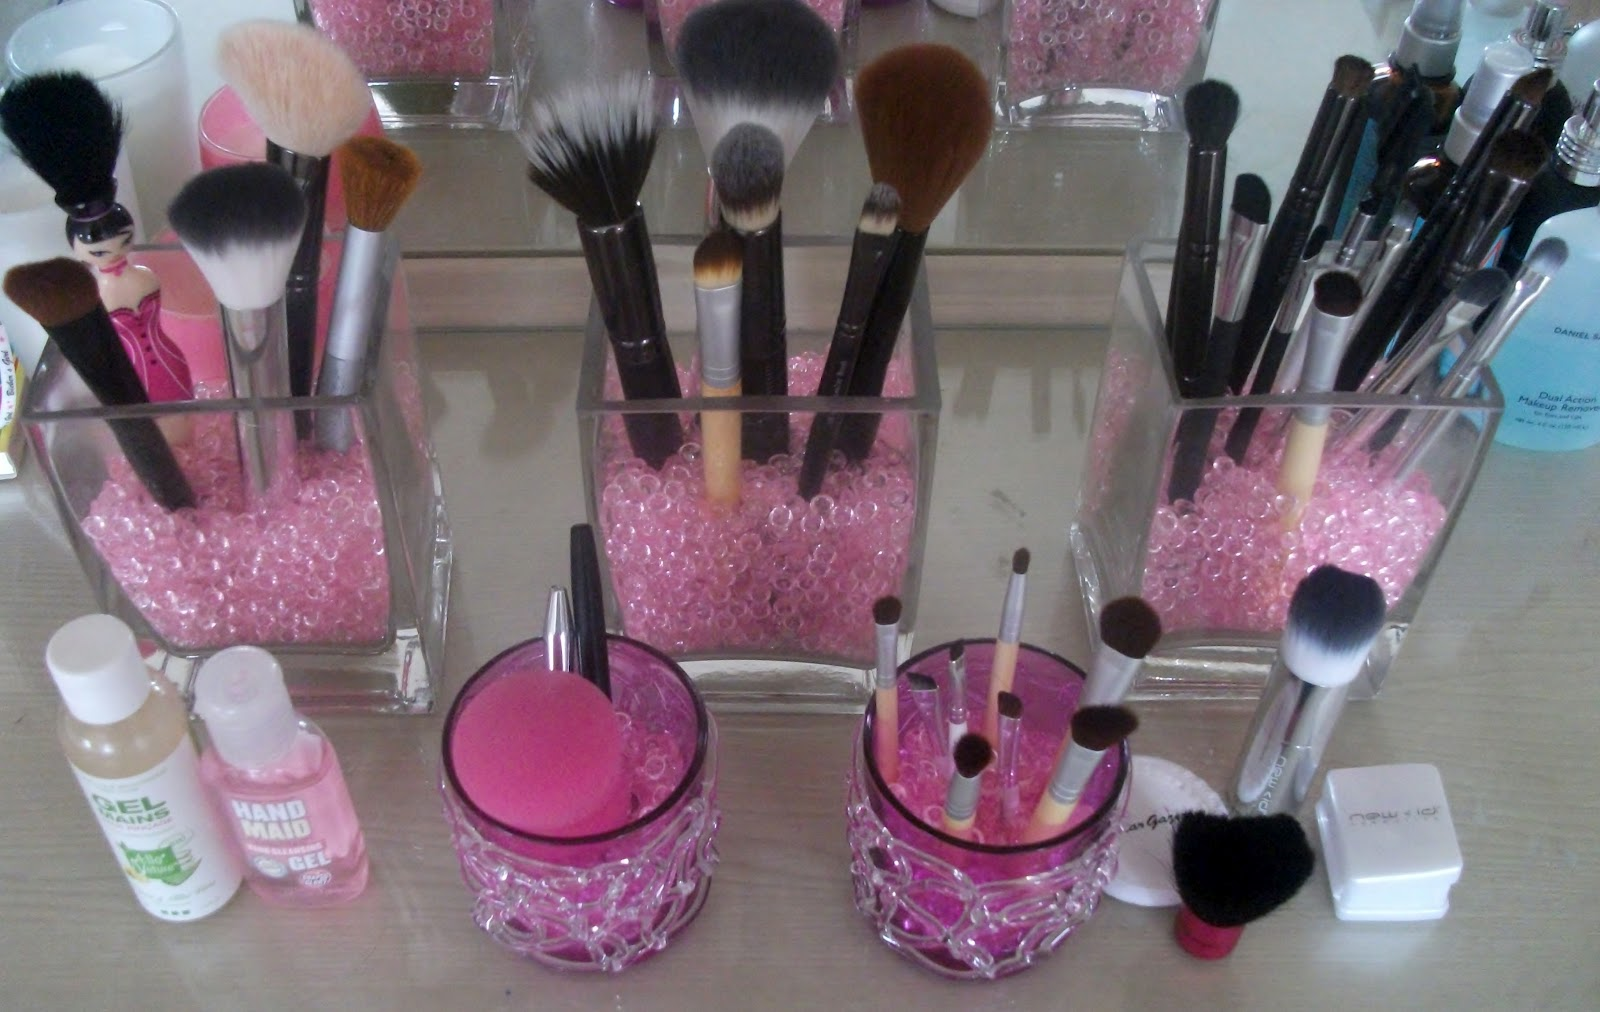 brush holder beads. drinktillwedrop-drinktillwedie asked: where would i be able to find a nice make up brush holder? holder beads r